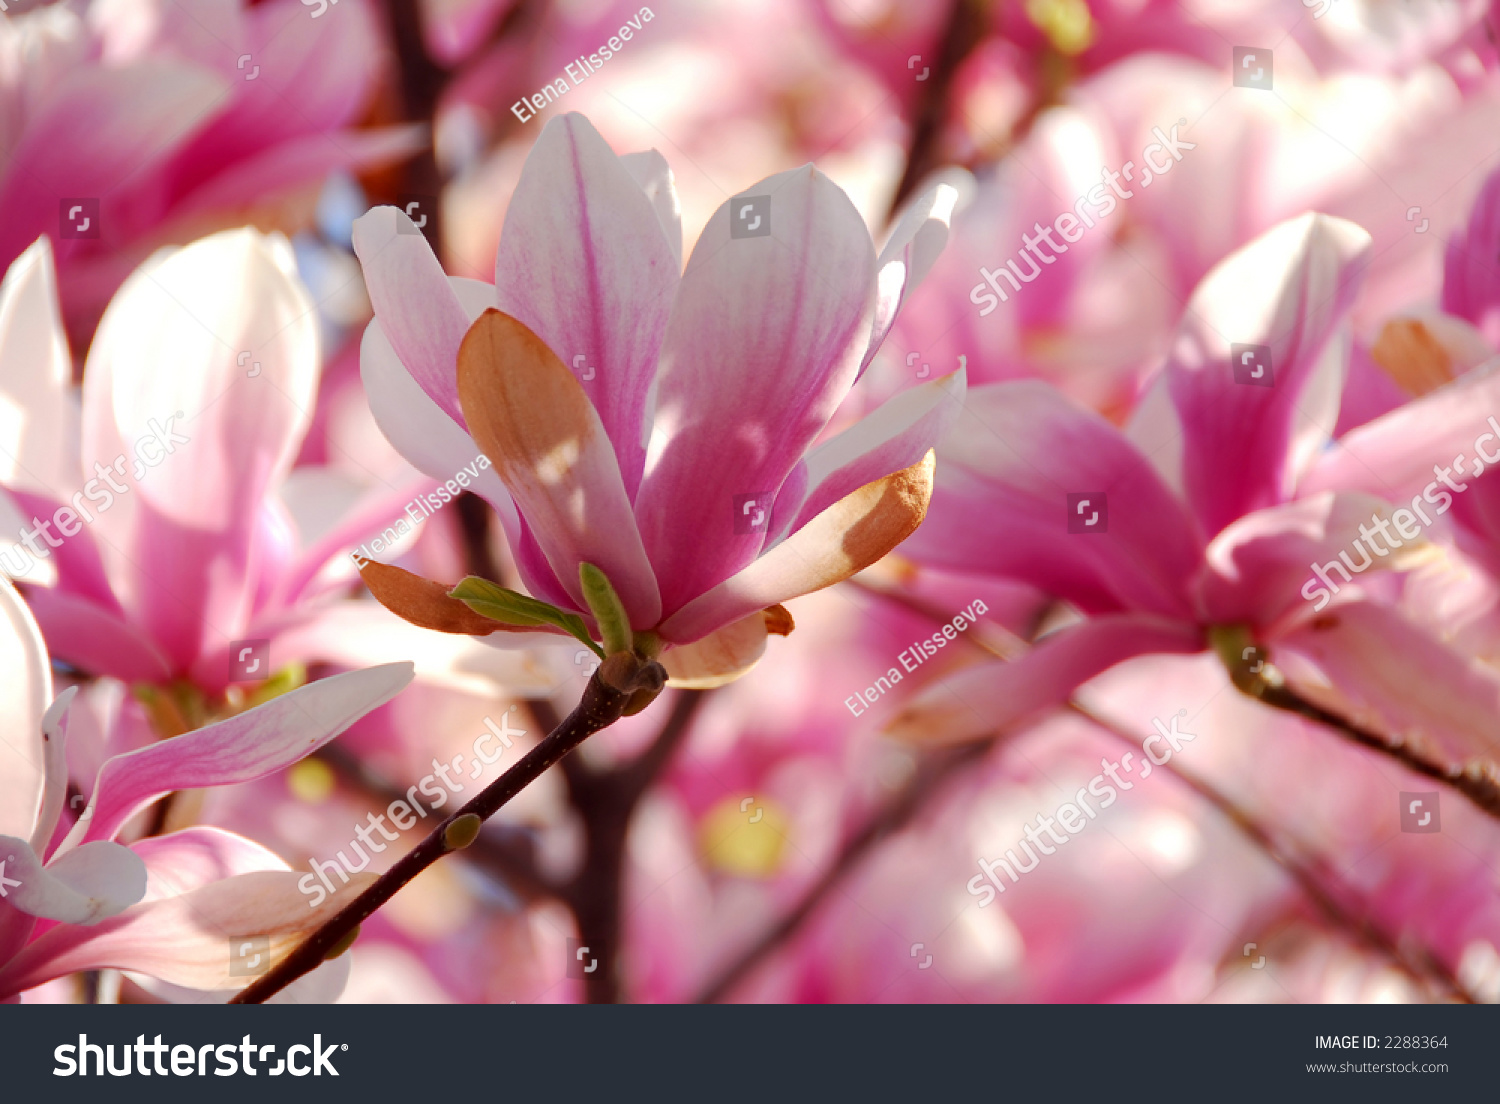 Background blooming magnolia tree big pink stock photo edit now background of blooming magnolia tree with big pink flowers mightylinksfo